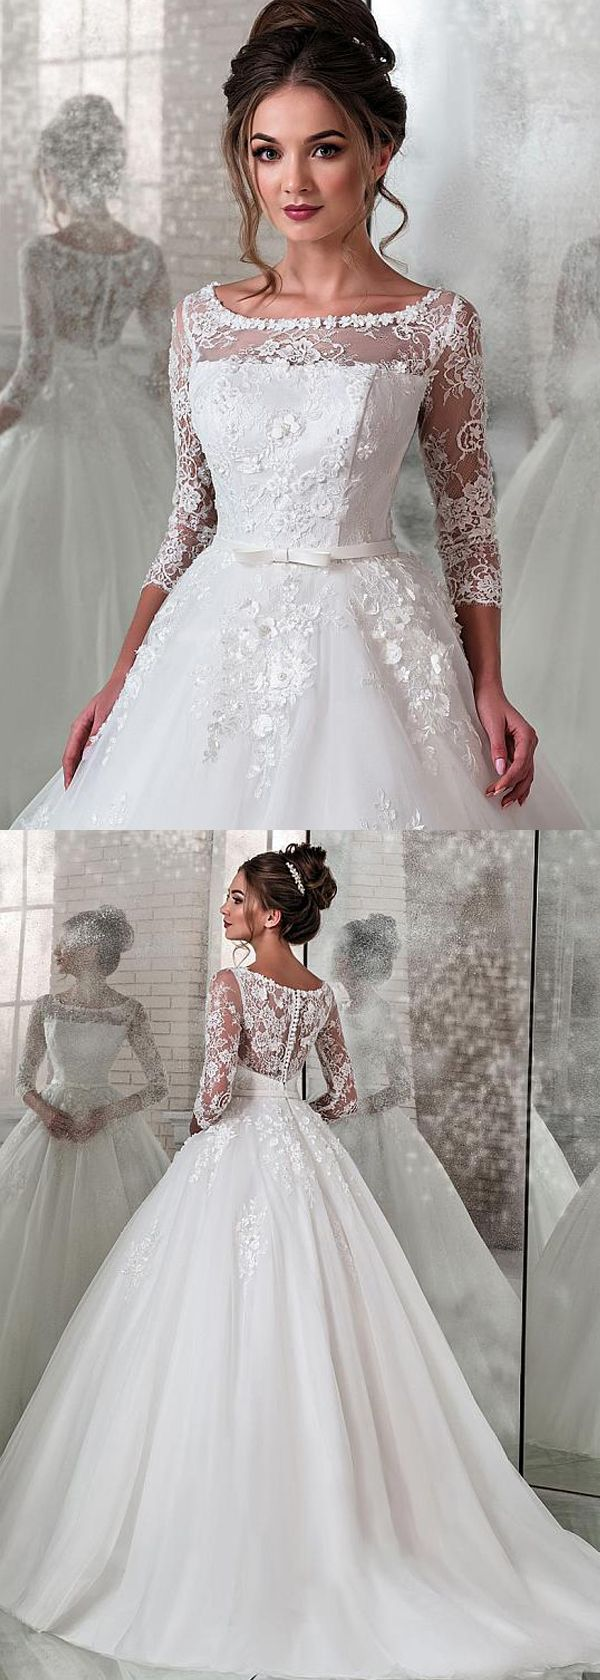 [179.50] Modest Lace & Tulle Scoop Neckline Natural Waistline Ball Gown Wedding Dress With Lace Appliques & 3D Flowers & Beadings